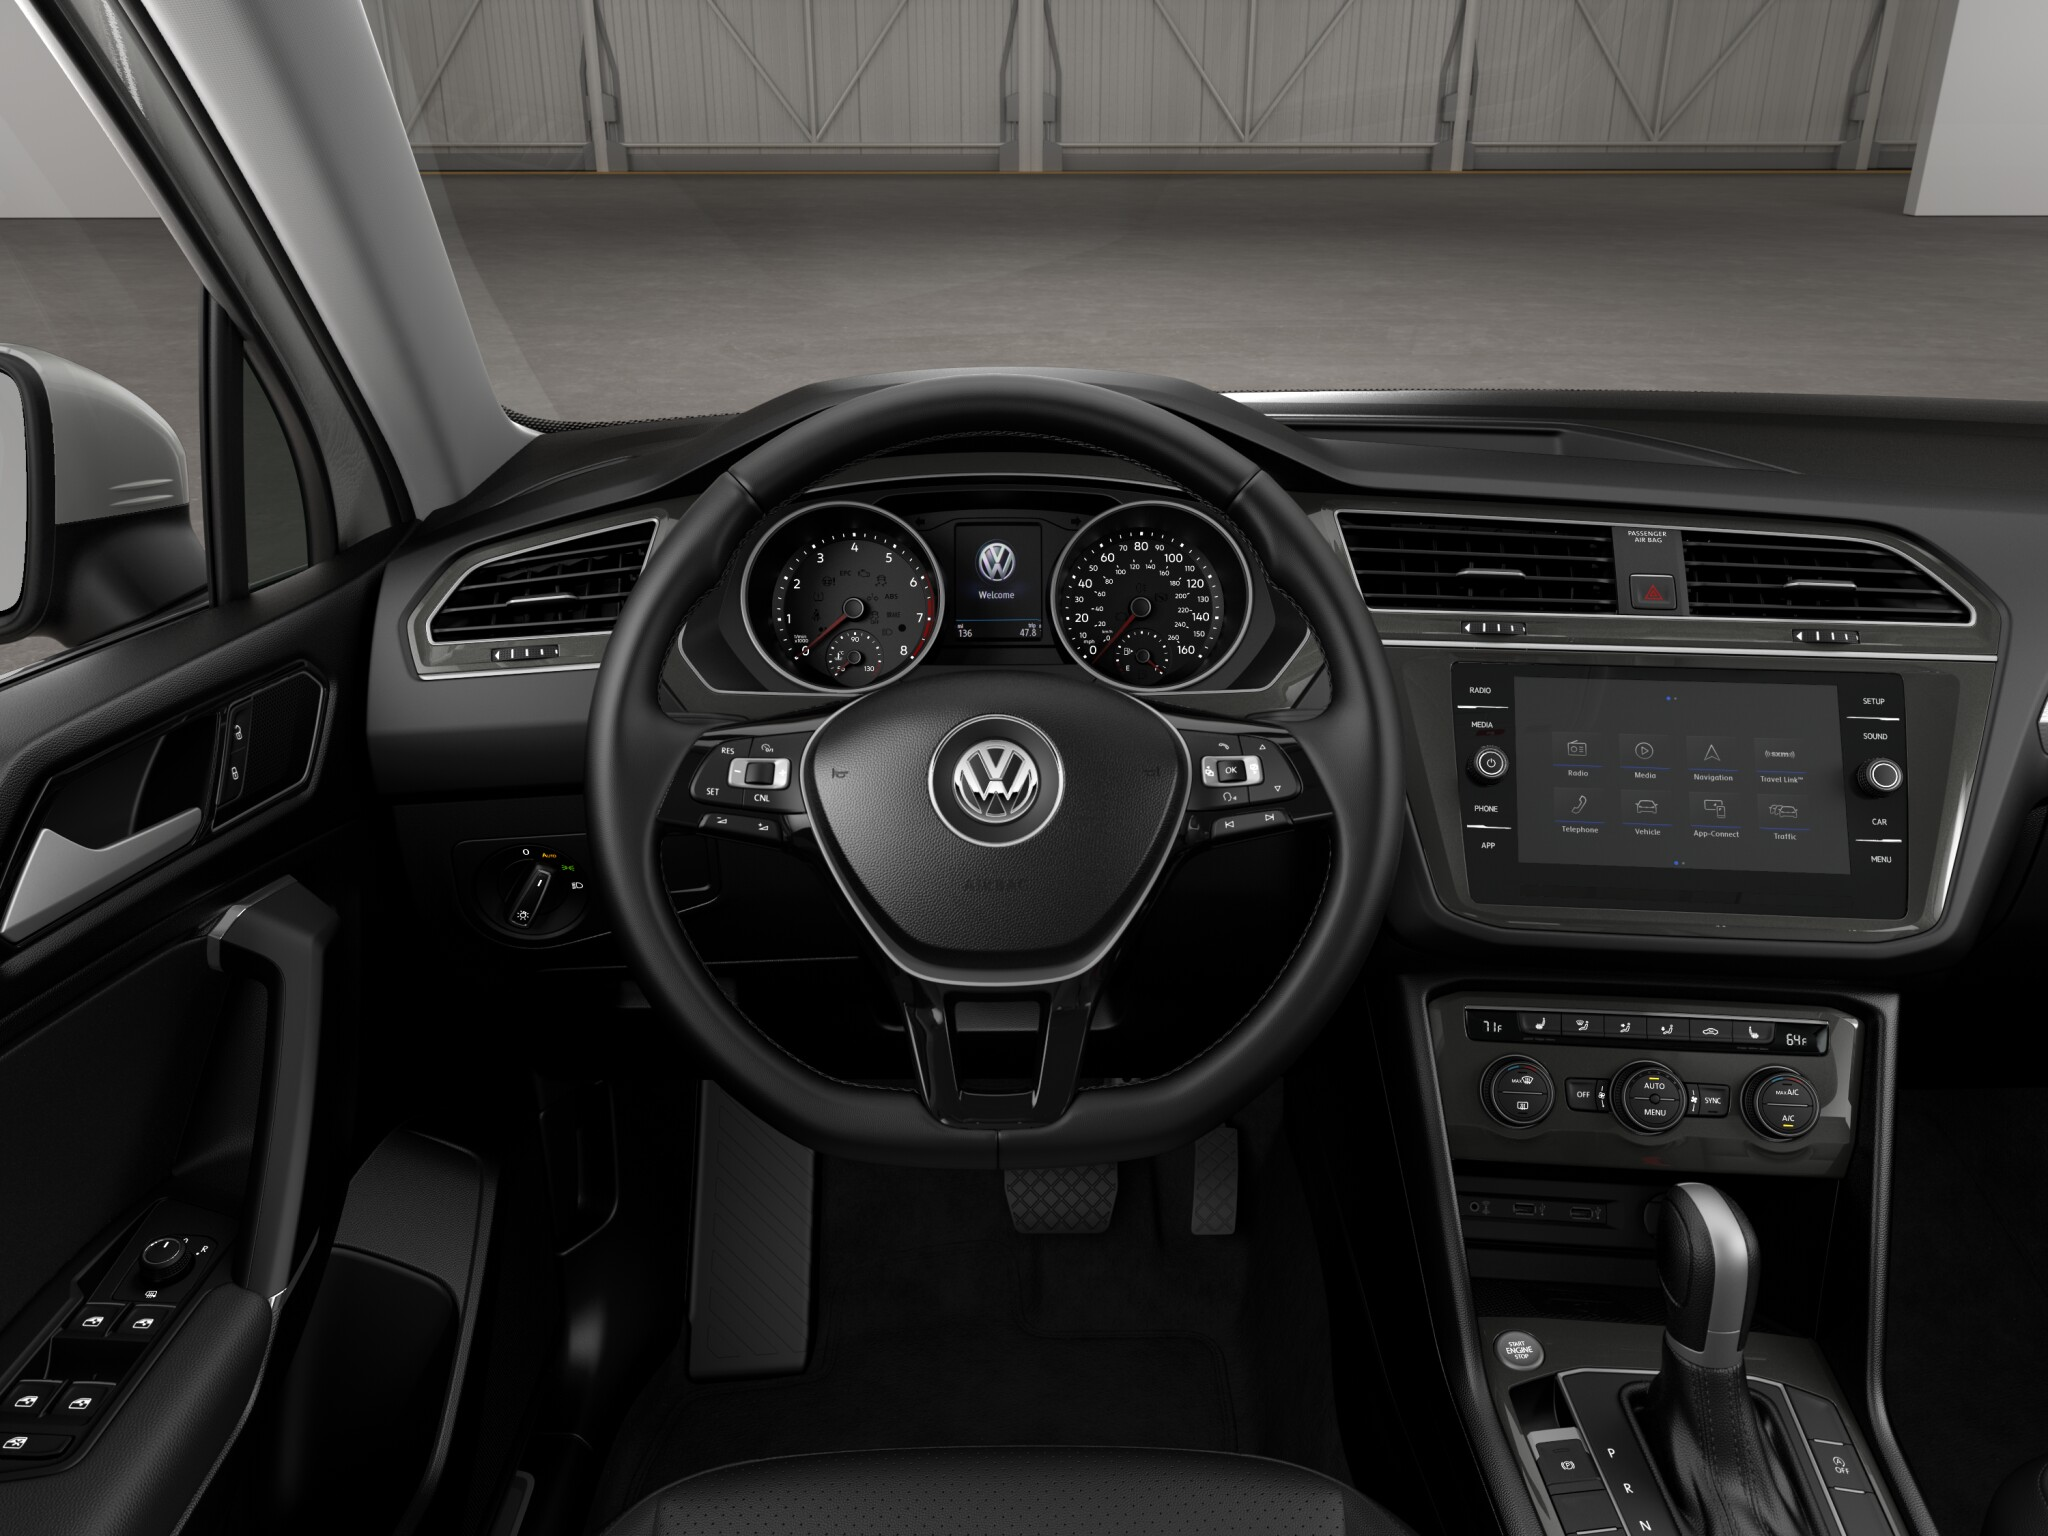 2018 Volkswagen Tiguan SE 4Motion Black Interior